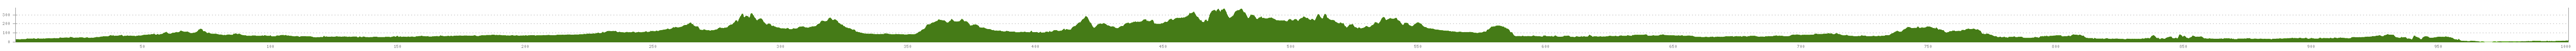 Elevation profile European Cycle Route R1 Germany